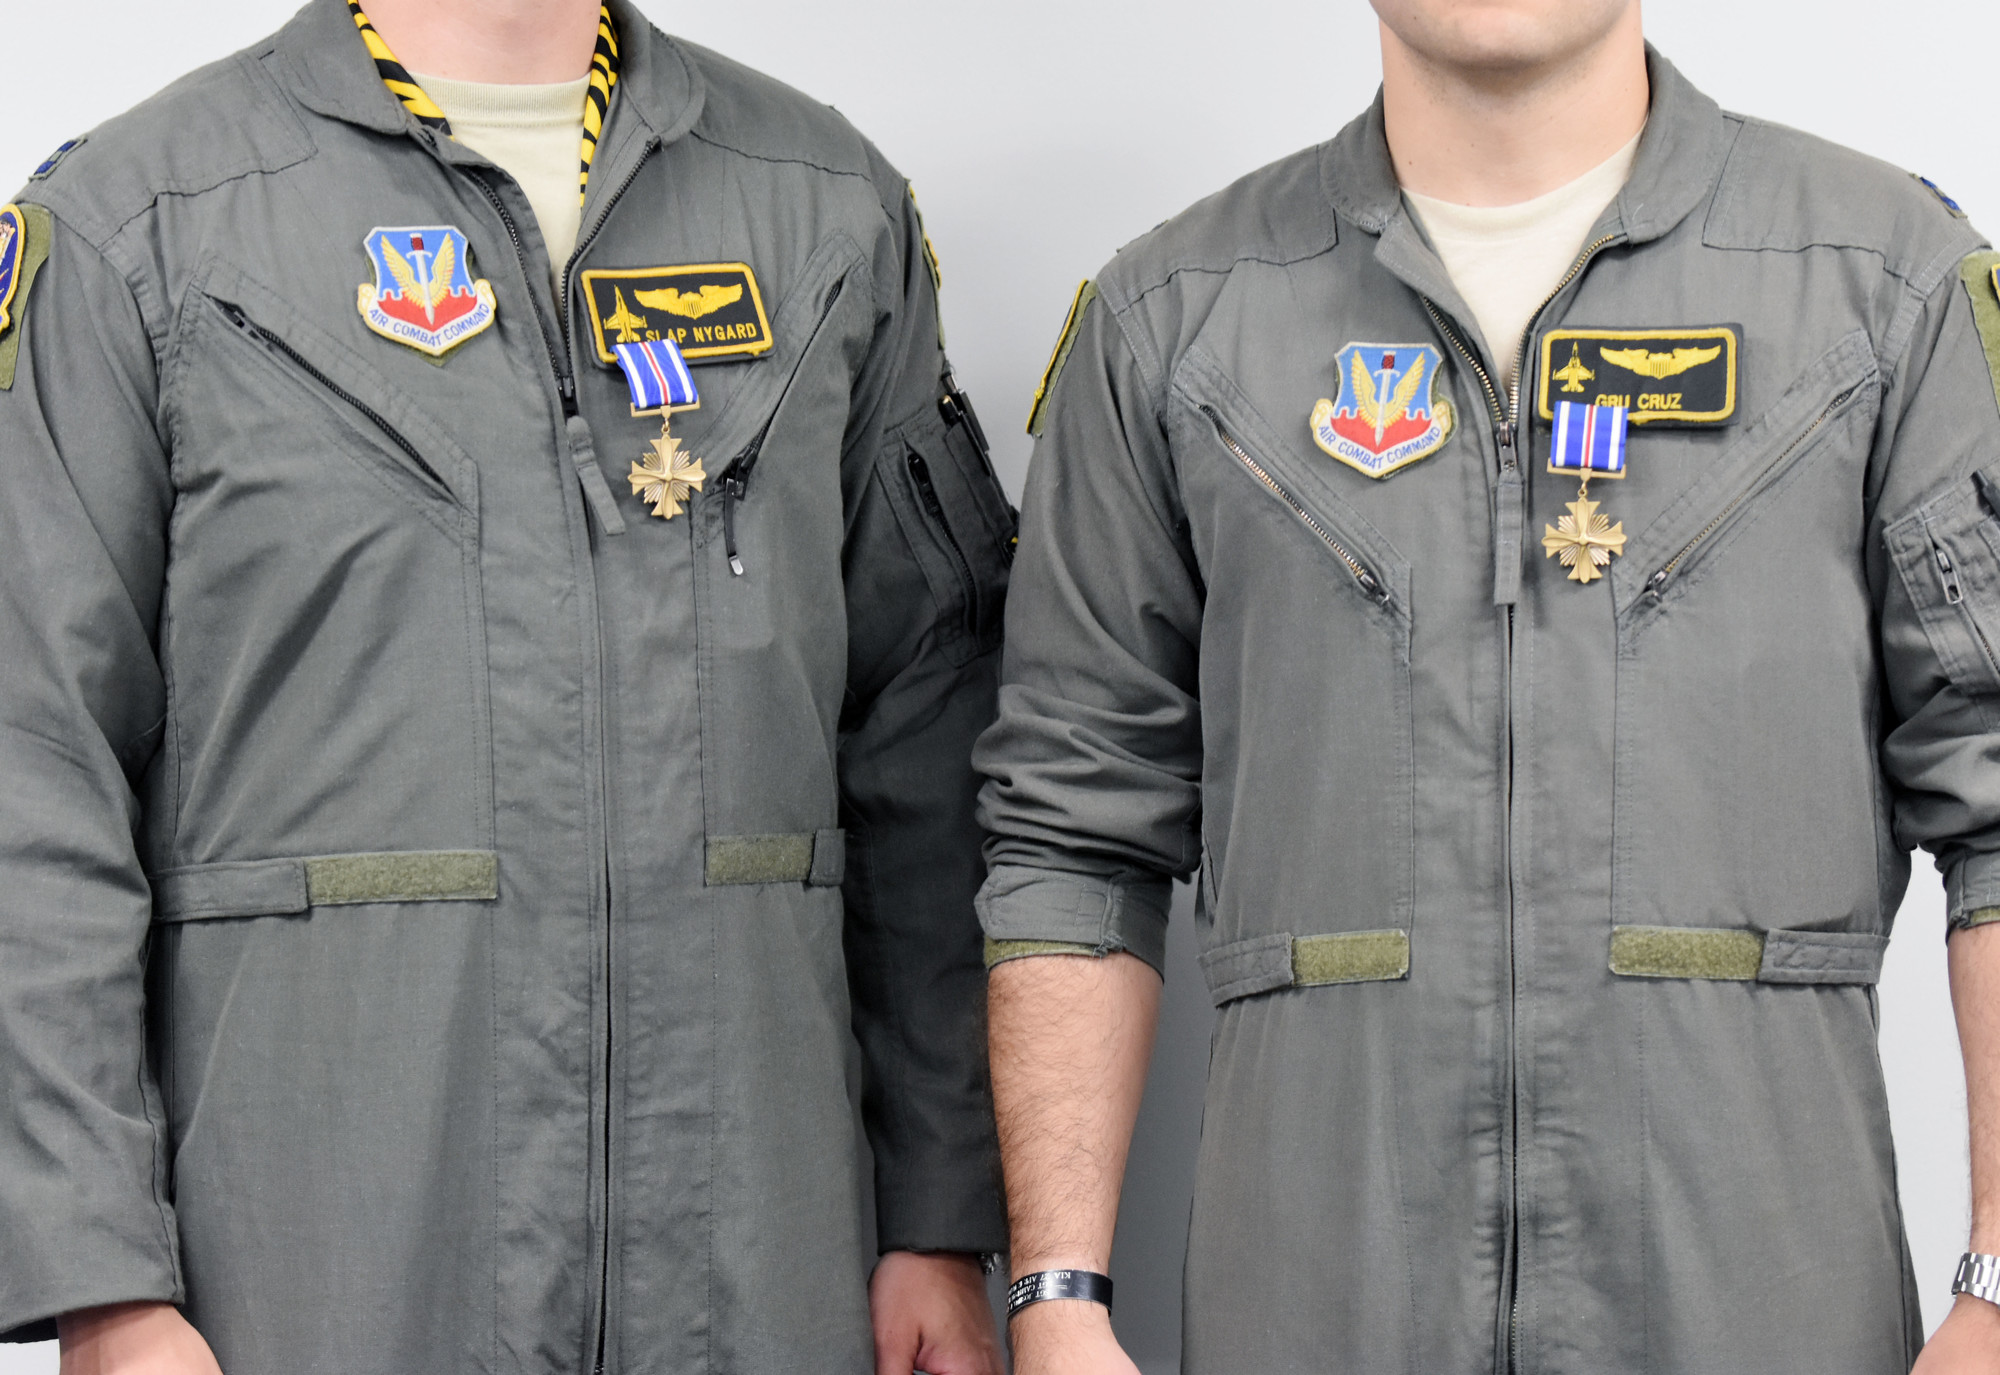 The blue Distinguished Flying Cross Medal hangs from the chests of Capts. John Nygard and Salvador Cruz.